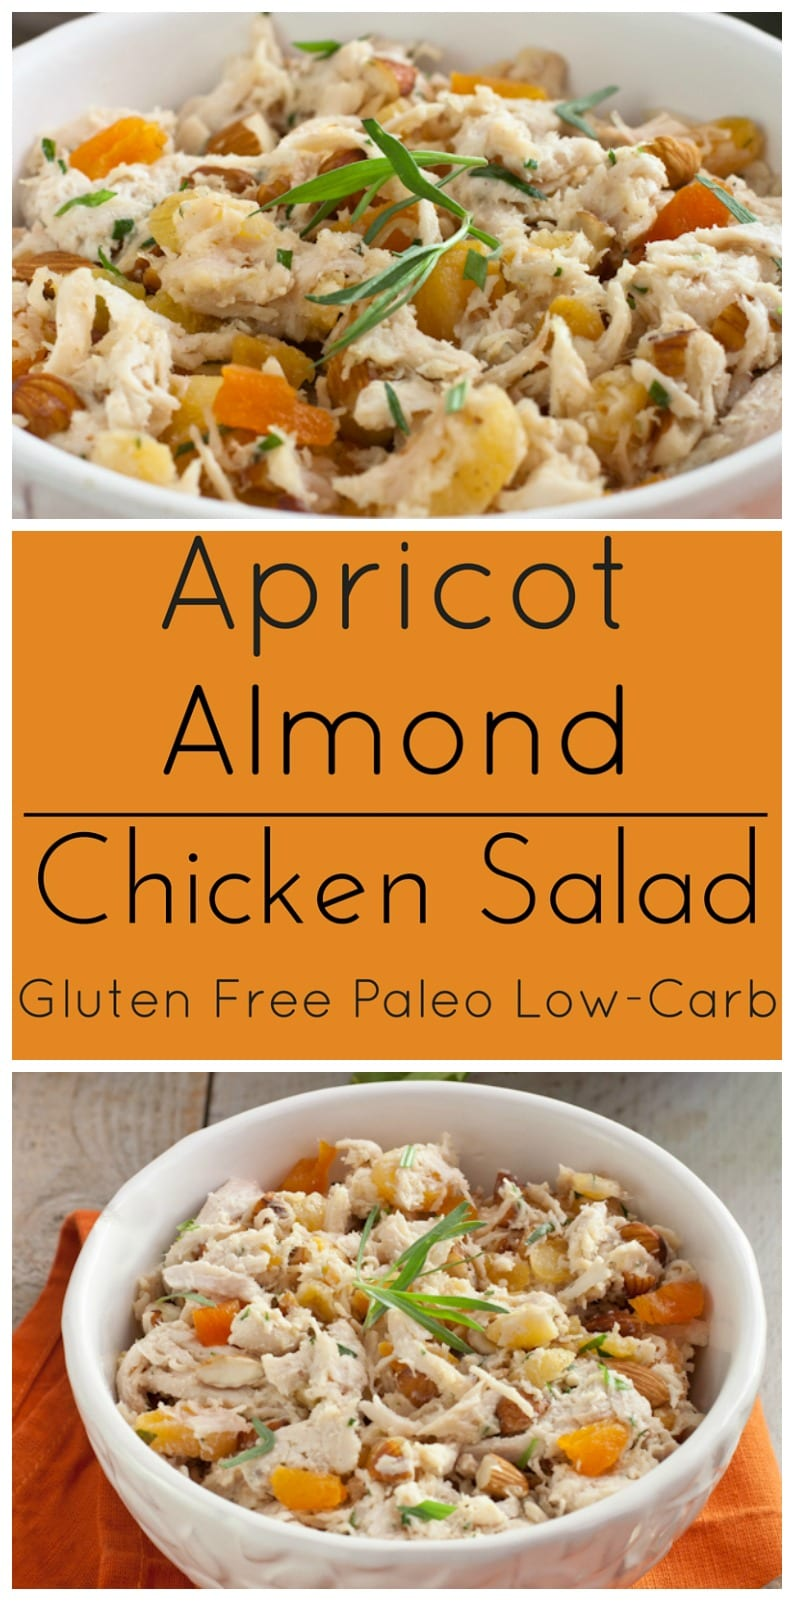 Delicious Chicken Salad with Apricots, Almonds and Tarragon. Gluten free, paleo and low-carb!